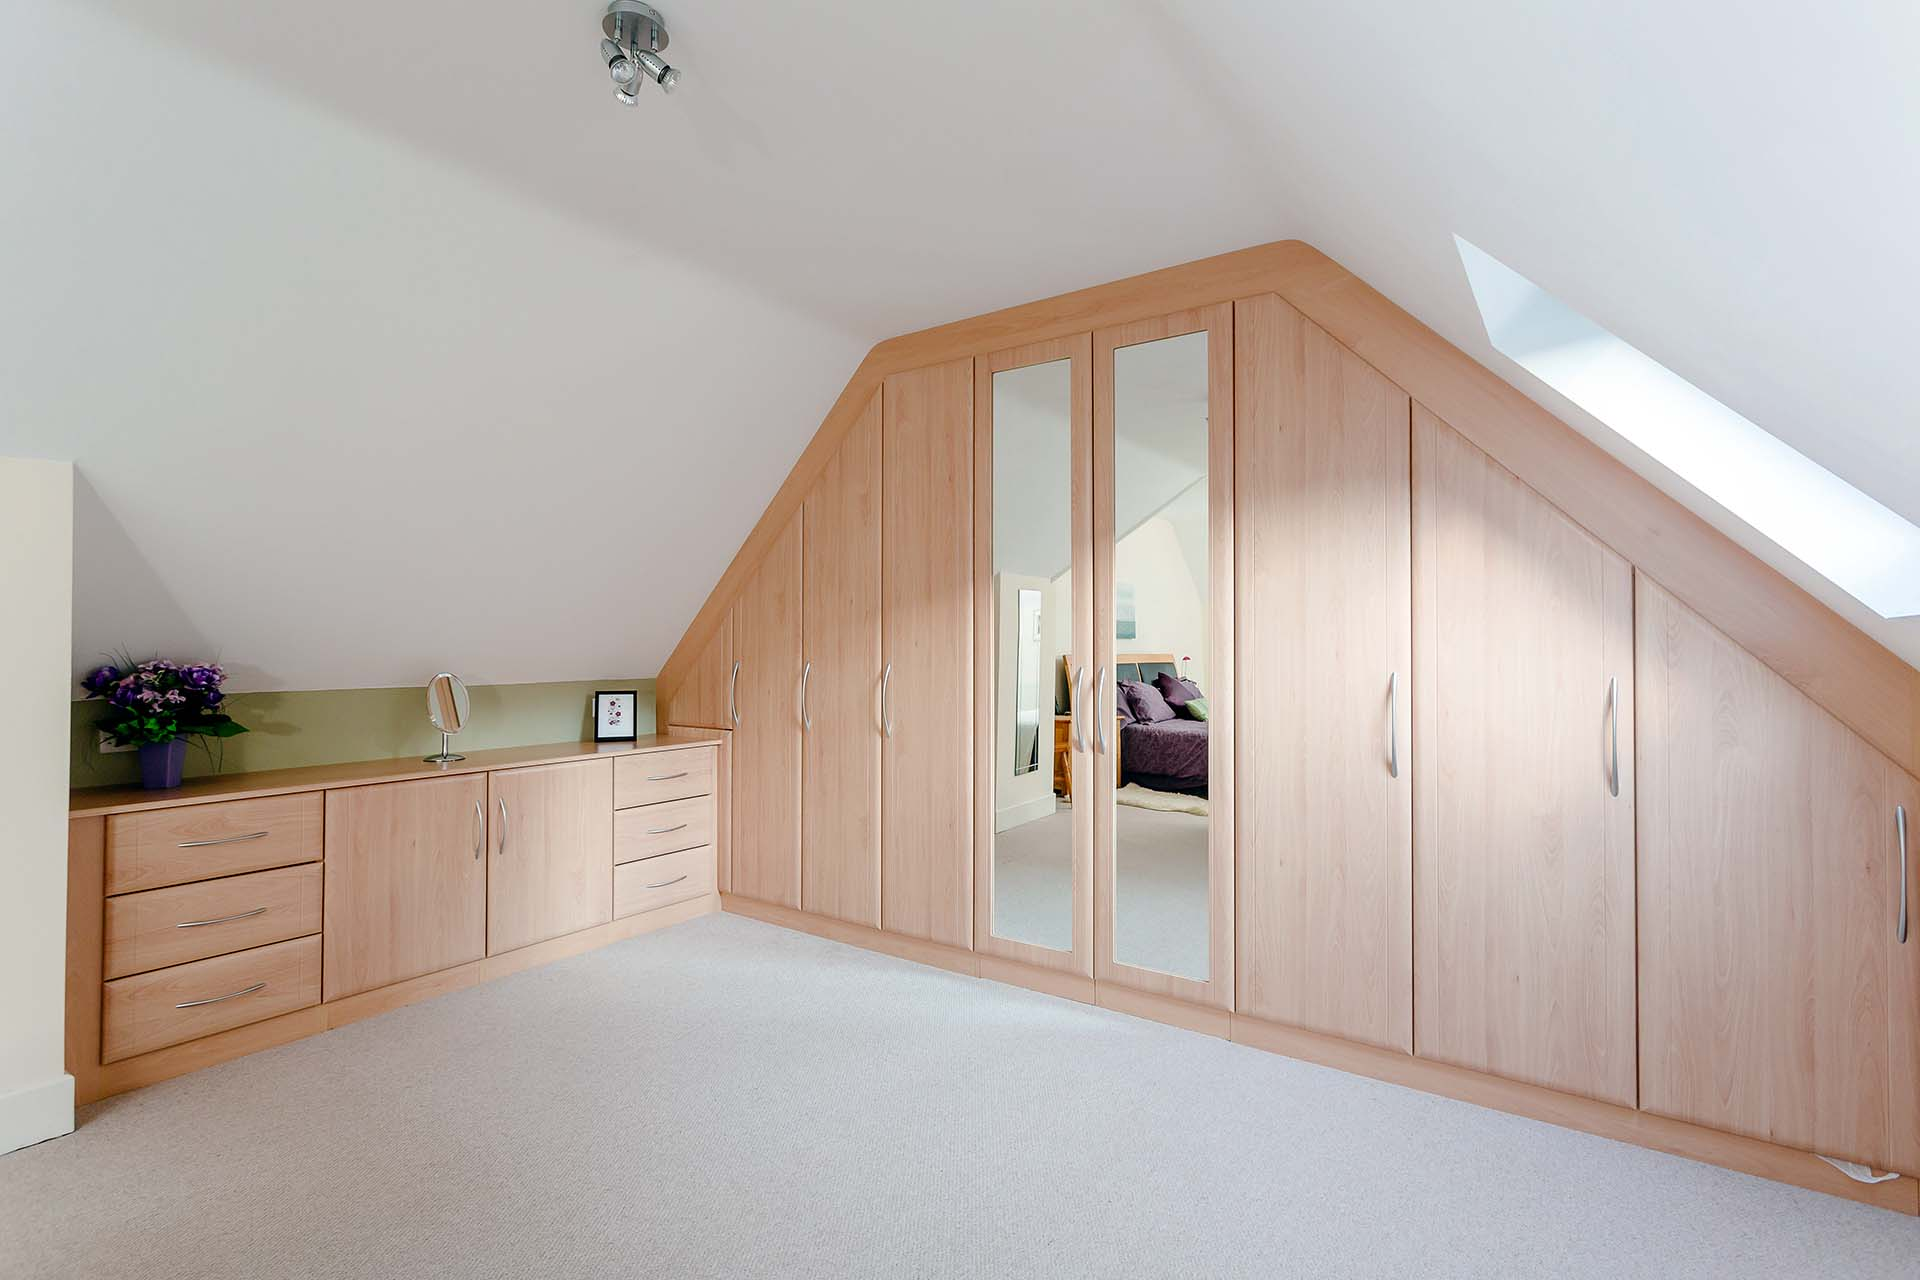 Cabin Bedroom Fitted Furniture: Fitted Furniture Weymouth And Portland